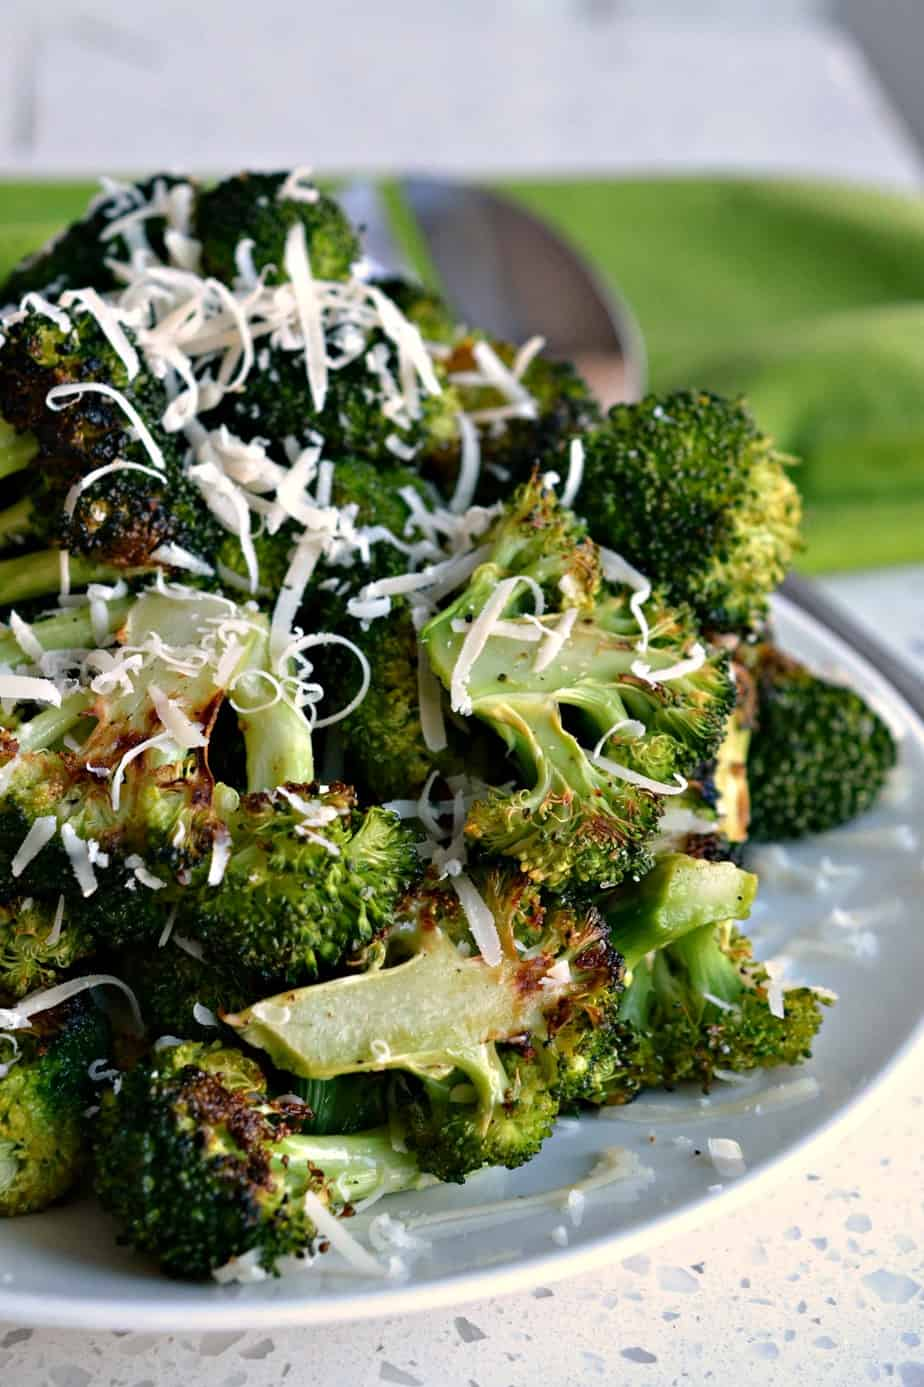 With just six ingredients this Oven Roasted Broccoli with lemon and Parmesan will become one of your favorite sides.